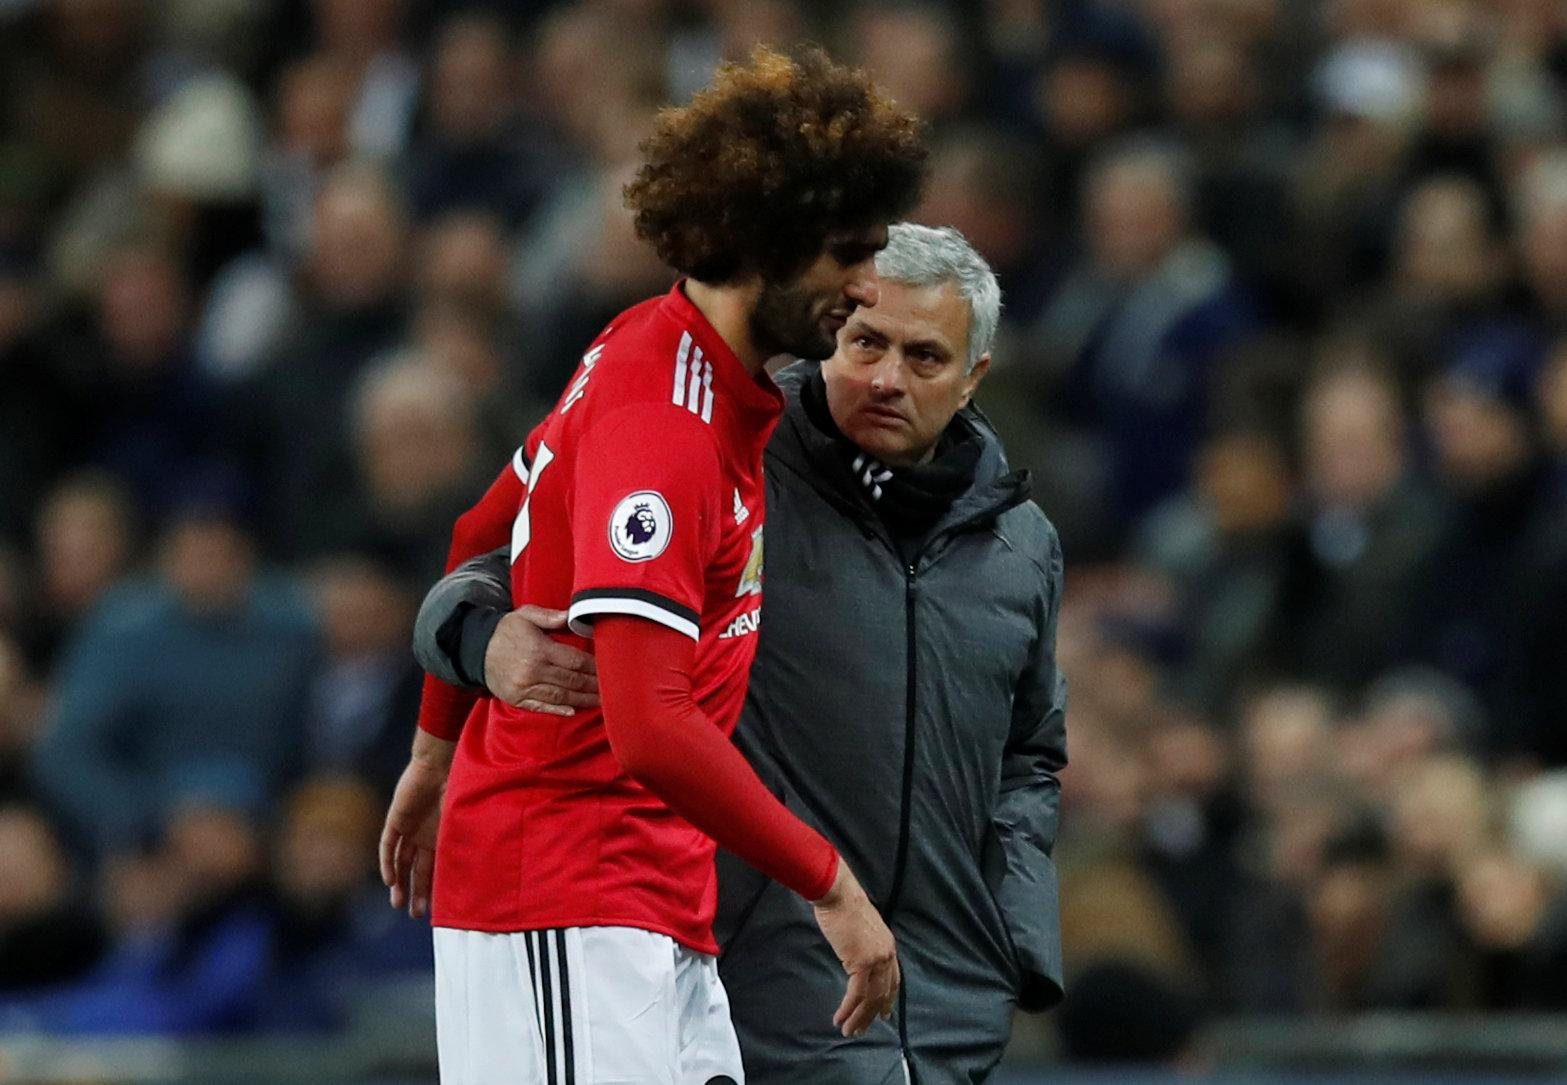 The Belgian midfielder is loved by Jose Mourinho but only eyes him as a back-up player